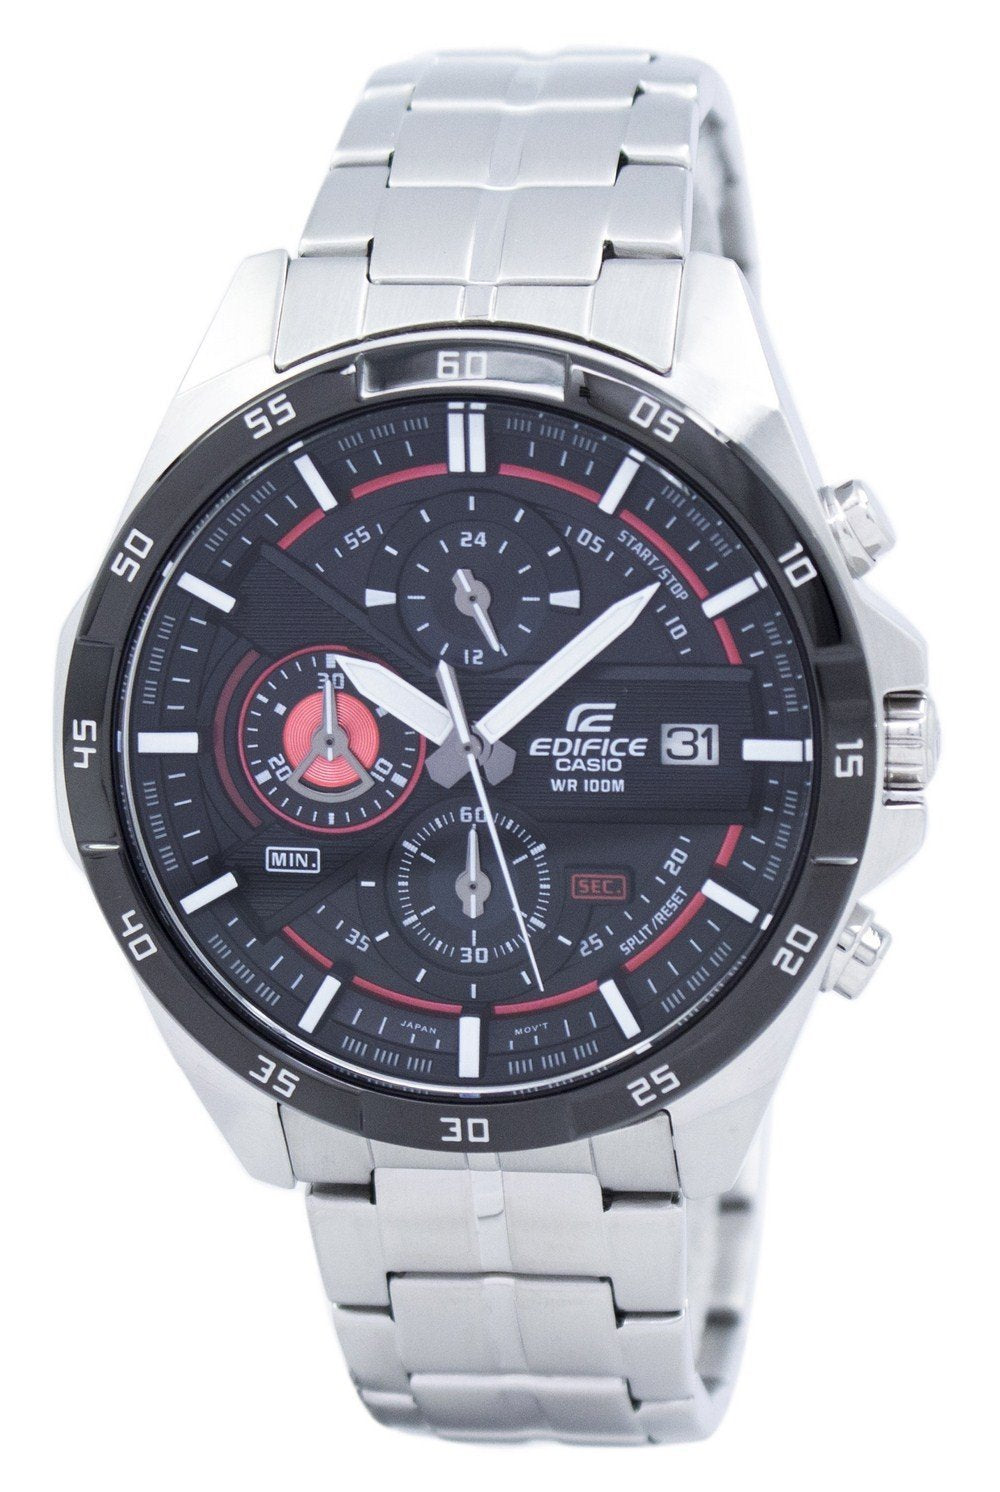 Casio Edifice Chronograph Quartz EFR-556DB-1AV EFR556DB-1AV Men's Watch